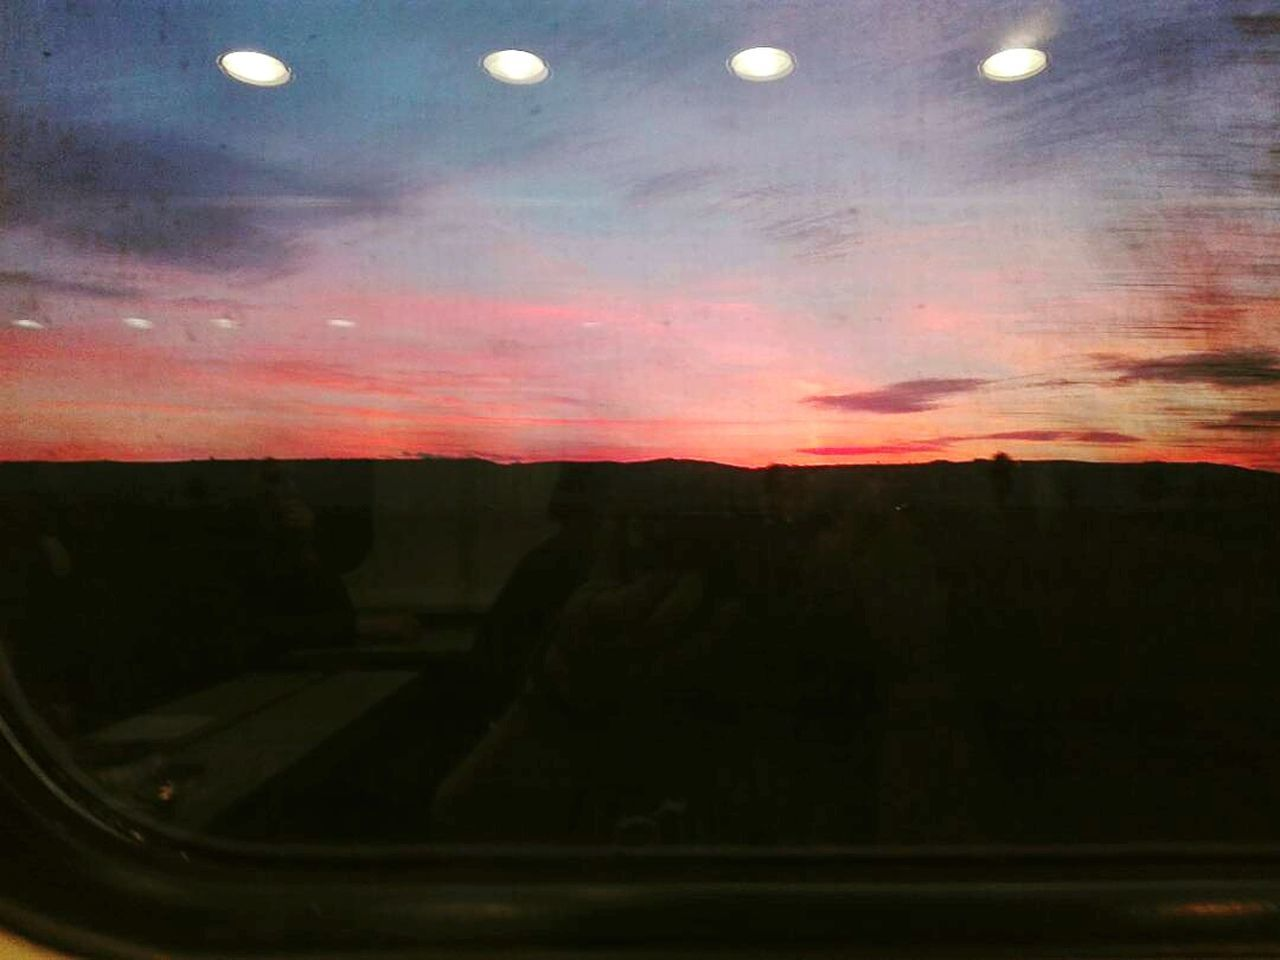 Cloud - Sky Twilightscapes Twilight Sky Twilight Scene Red Sky No People Night Sky Reflection In The Window Train Window